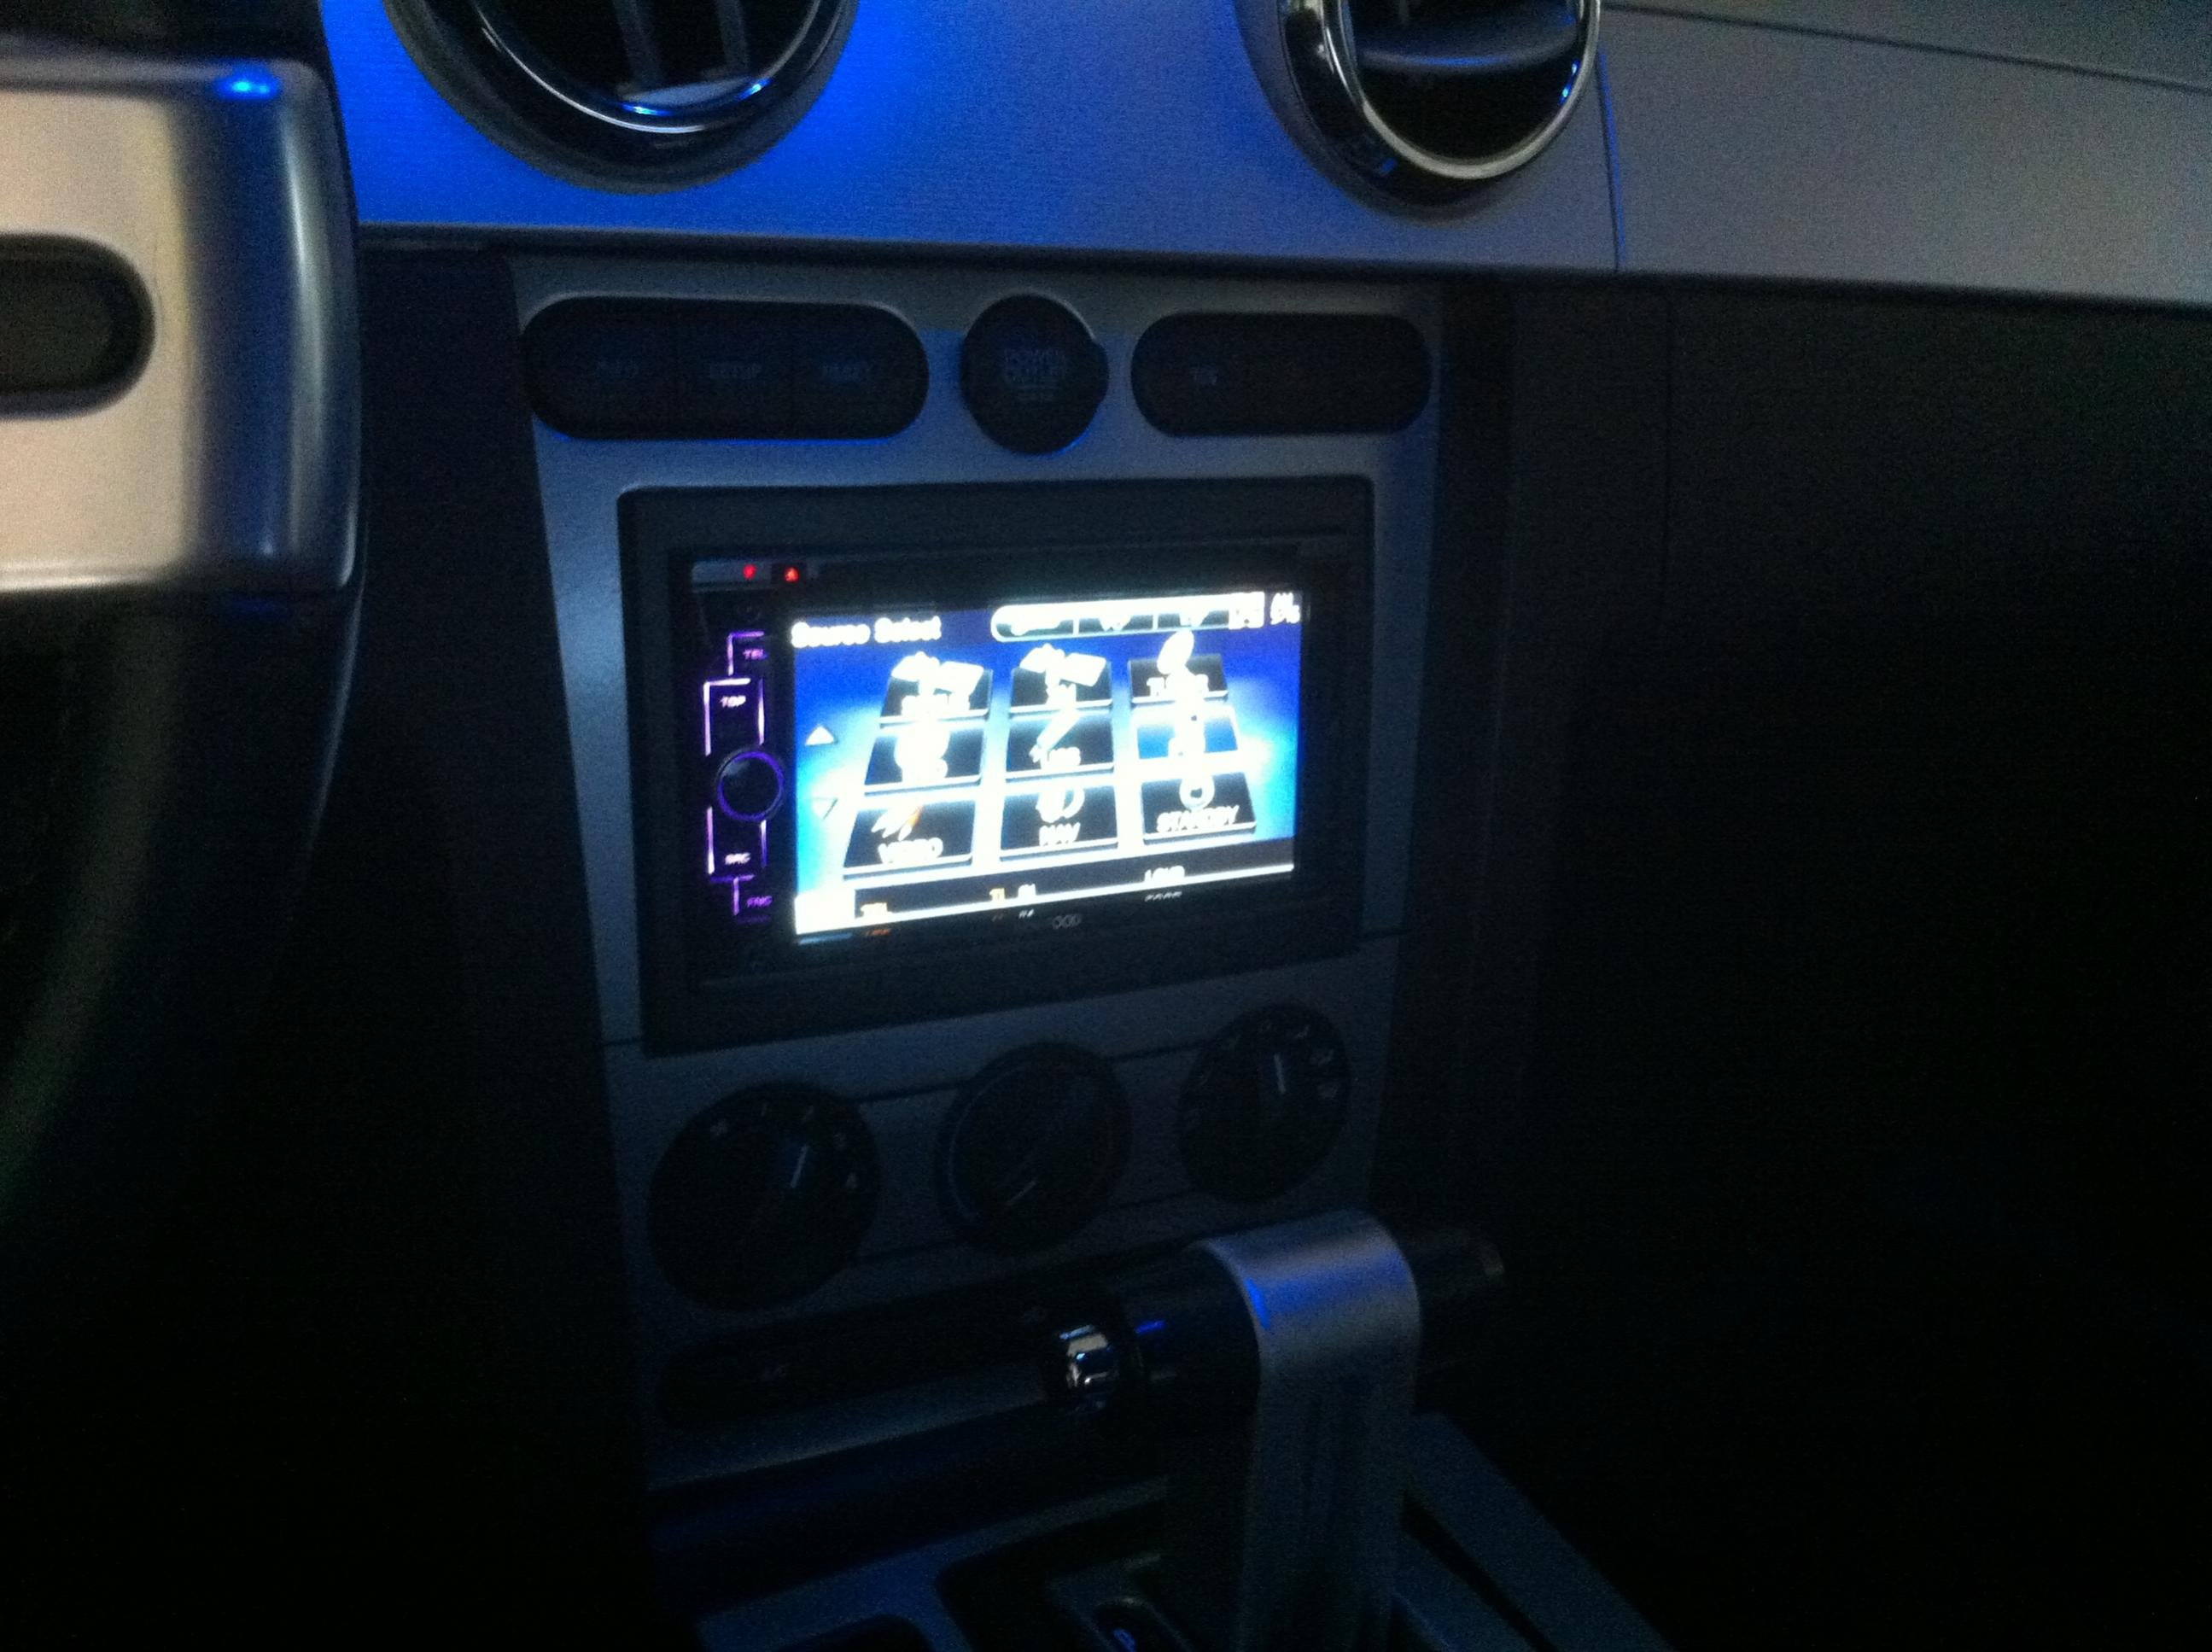 Kenwood Ddx616 Installed In 2005 Mustang Gt Ford Mustang